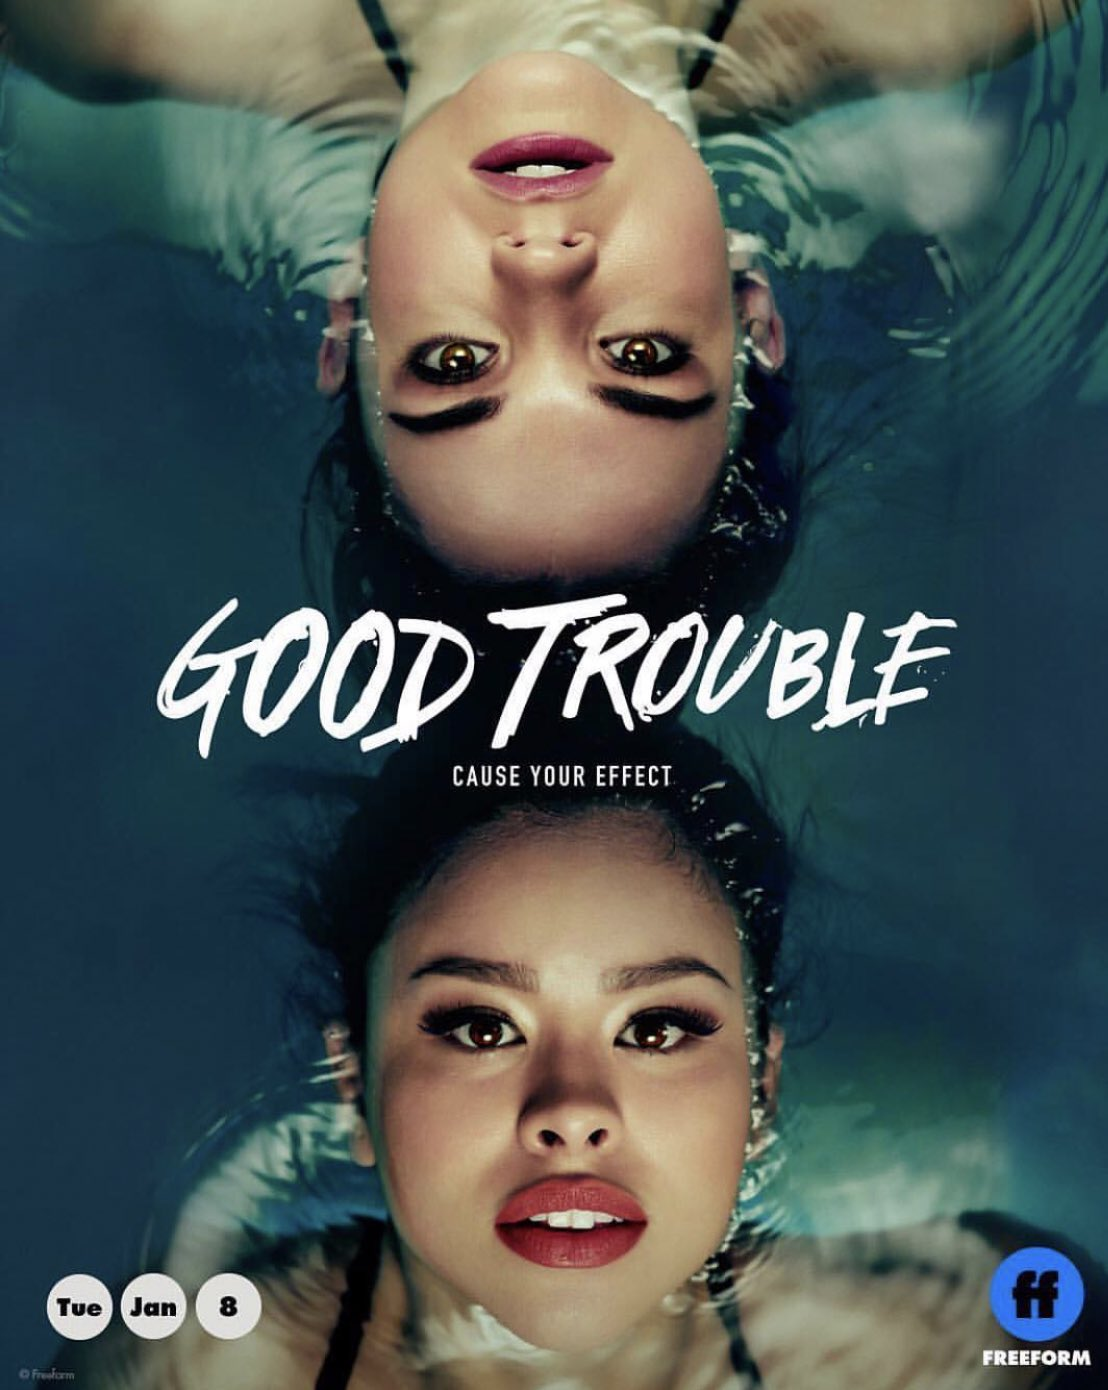 Let me know what you think of the show! #GoodTrouble comment beloooow������ https://t.co/A7se0hkiLI